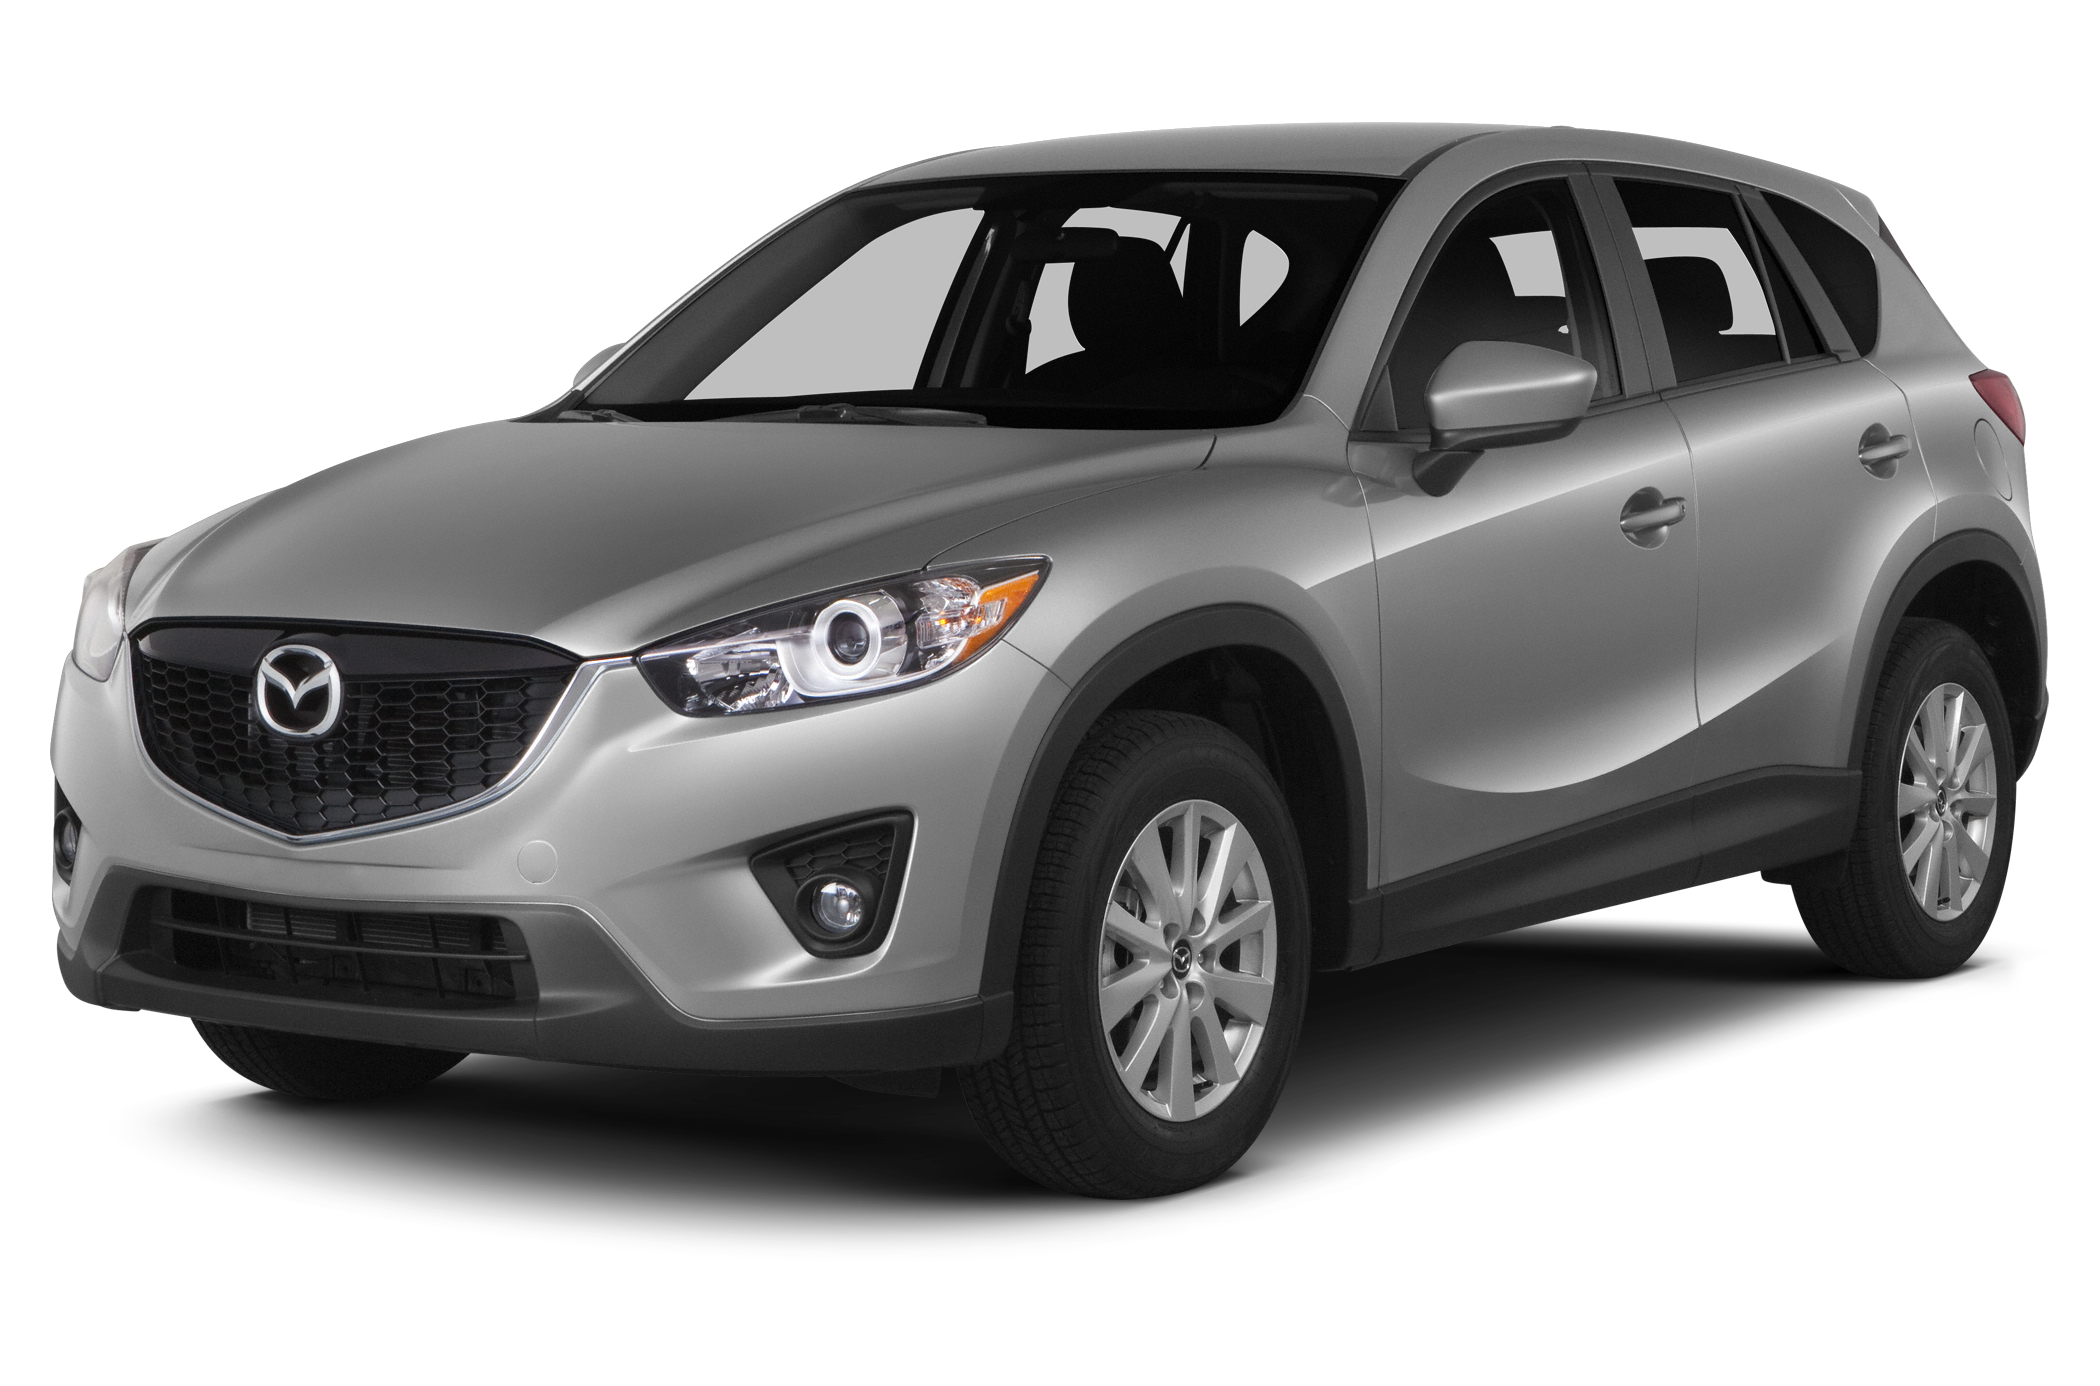 Mazda Cx 5 Consumer Reviews New Cars Used Cars | 2016 Car Release Date